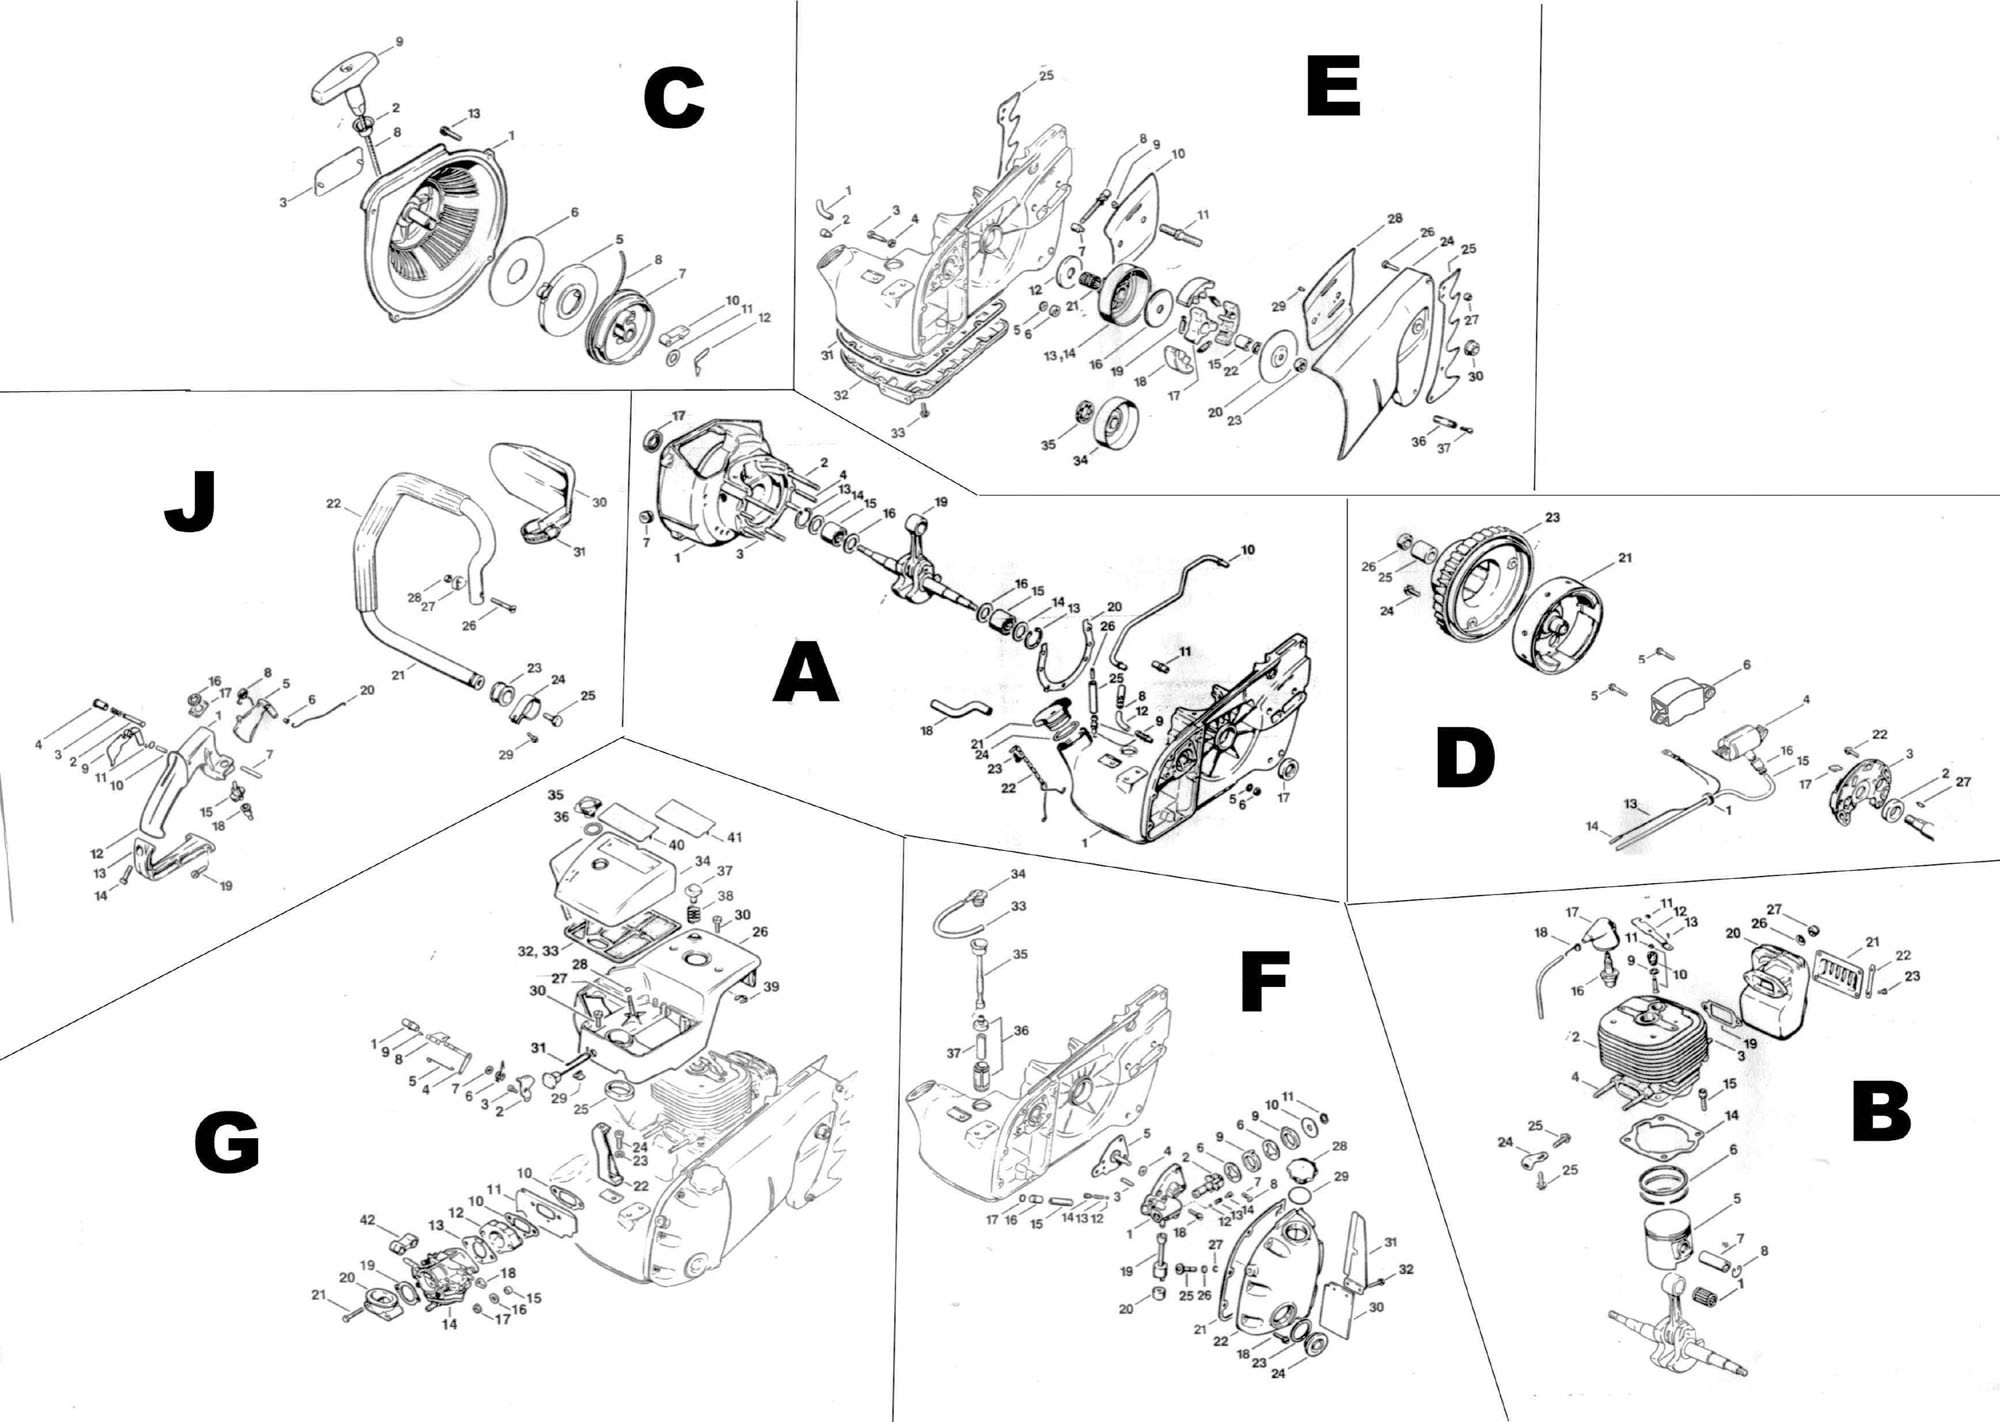 Stihl 028 Parts Diagram Stihl Chainsaw Workshop And